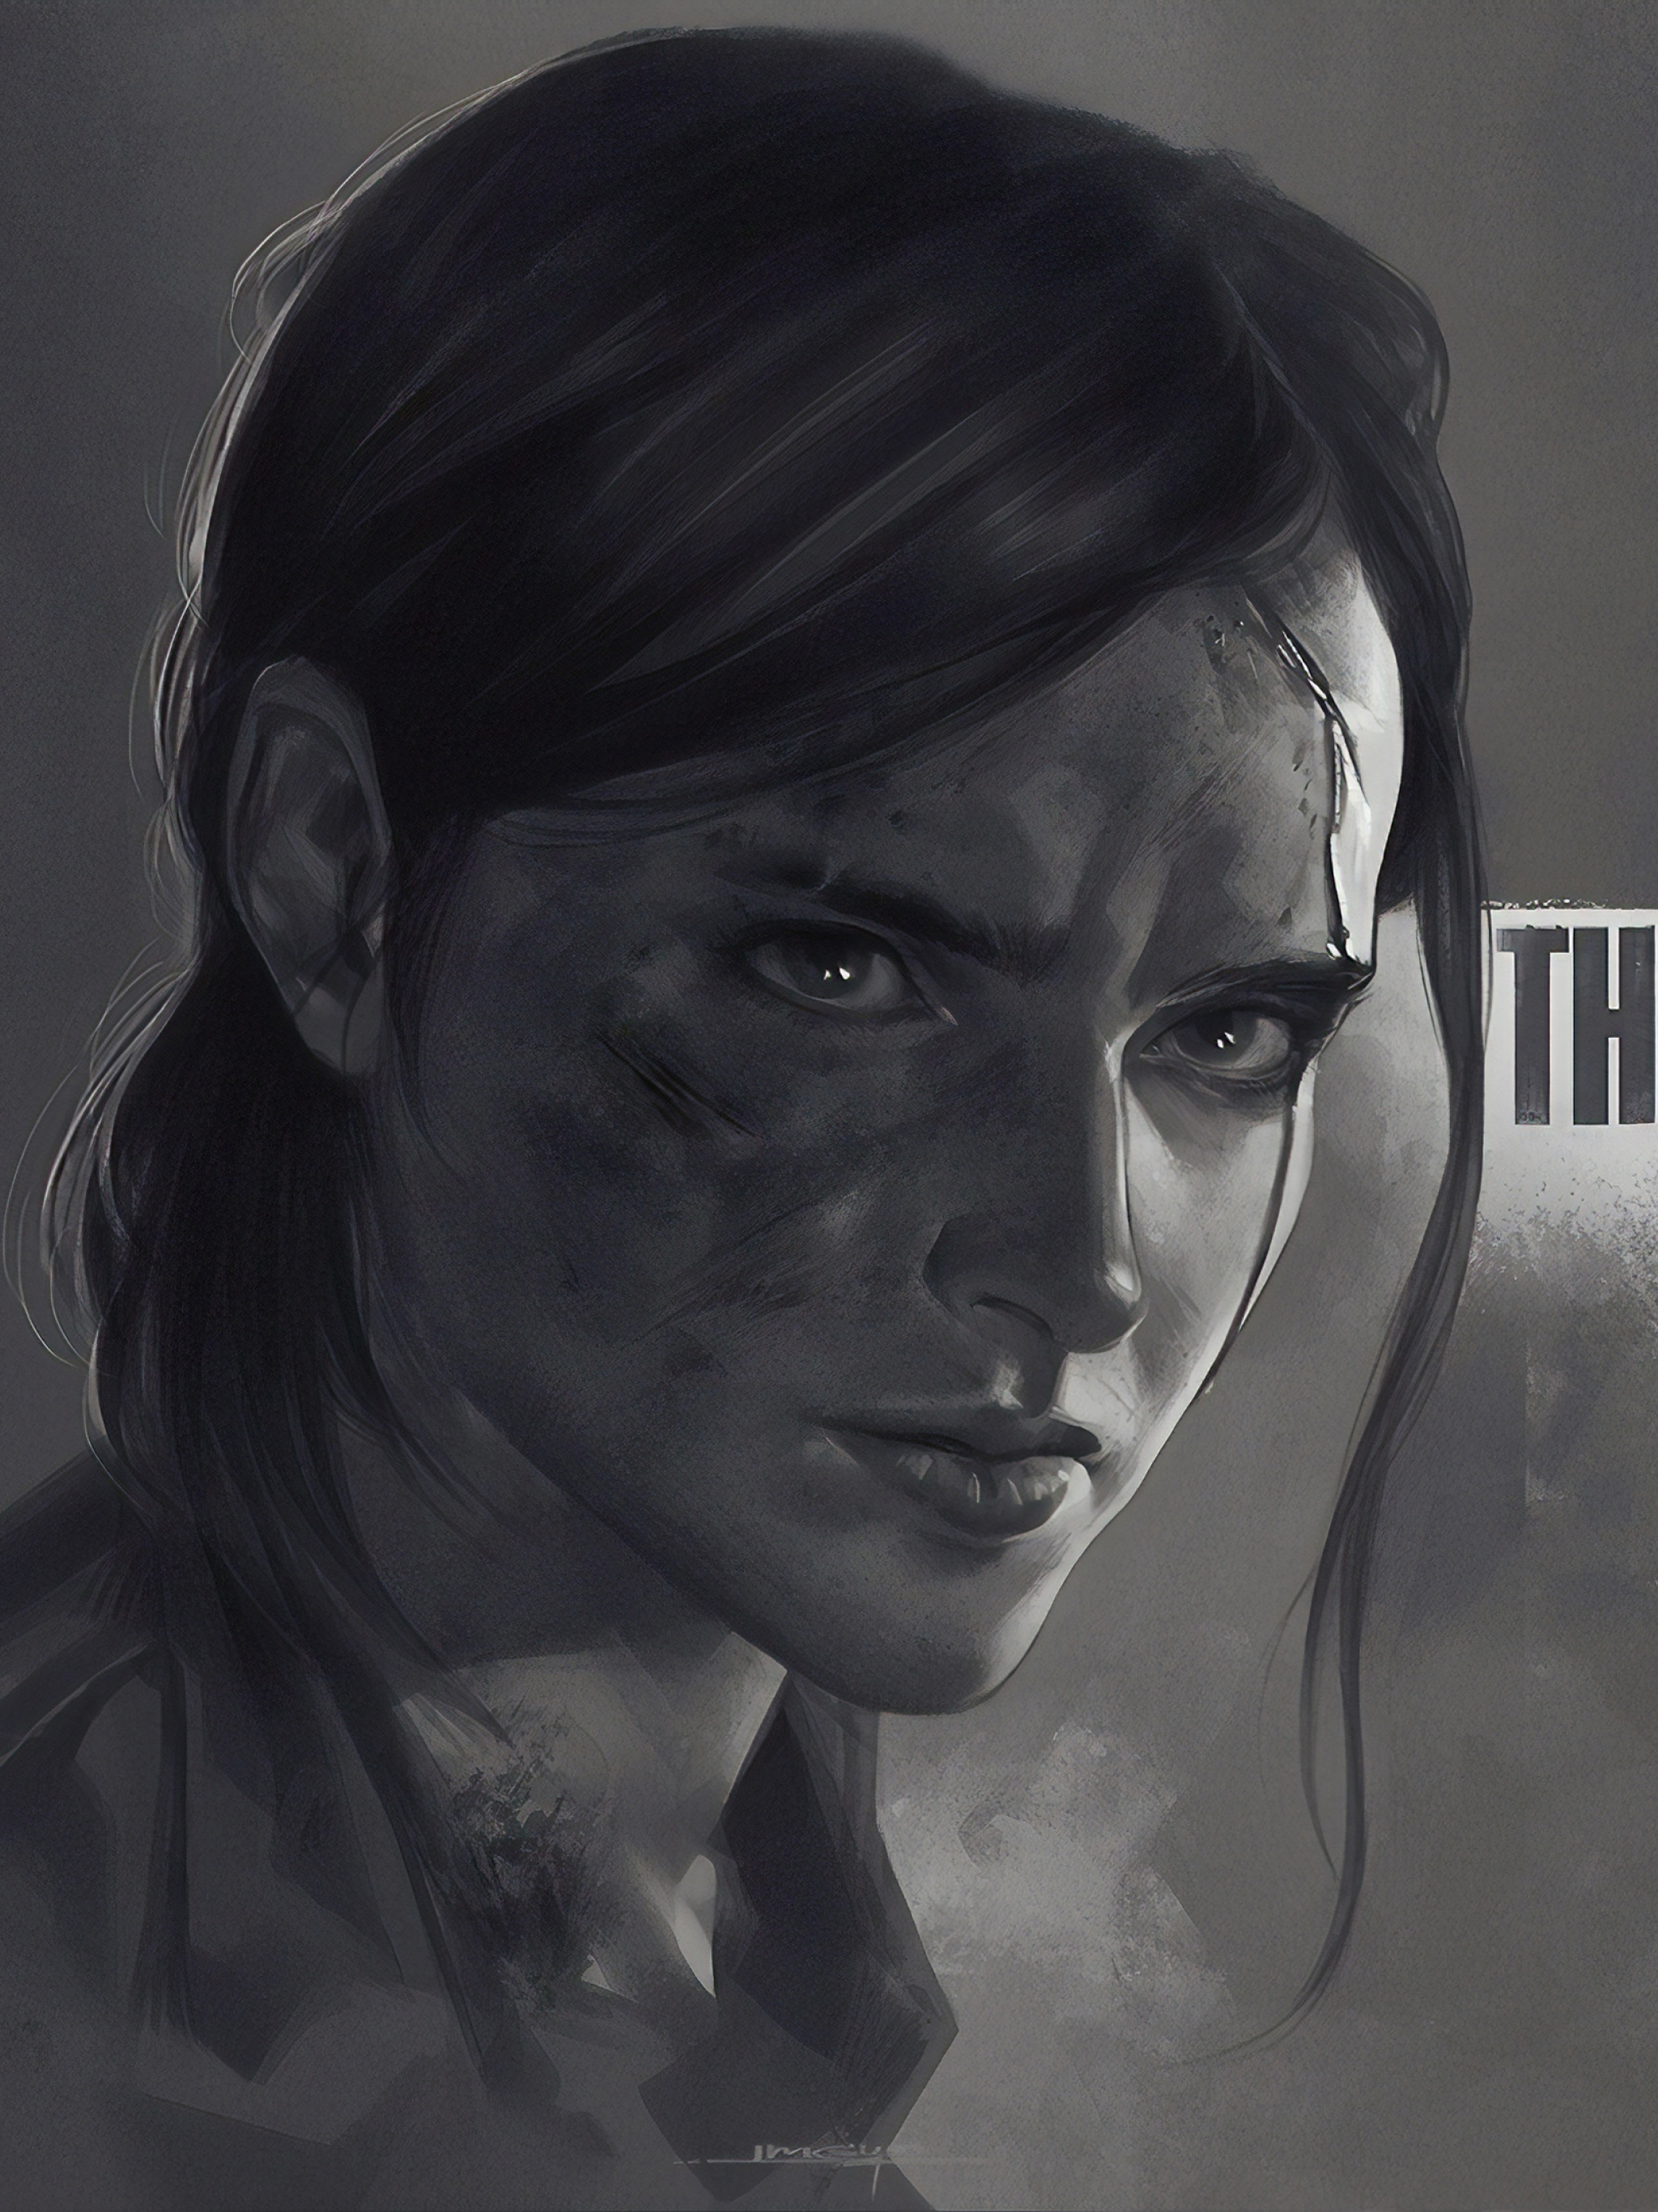 2048x2732 Ellie The Last Of Us Part 2 2048x2732 Resolution